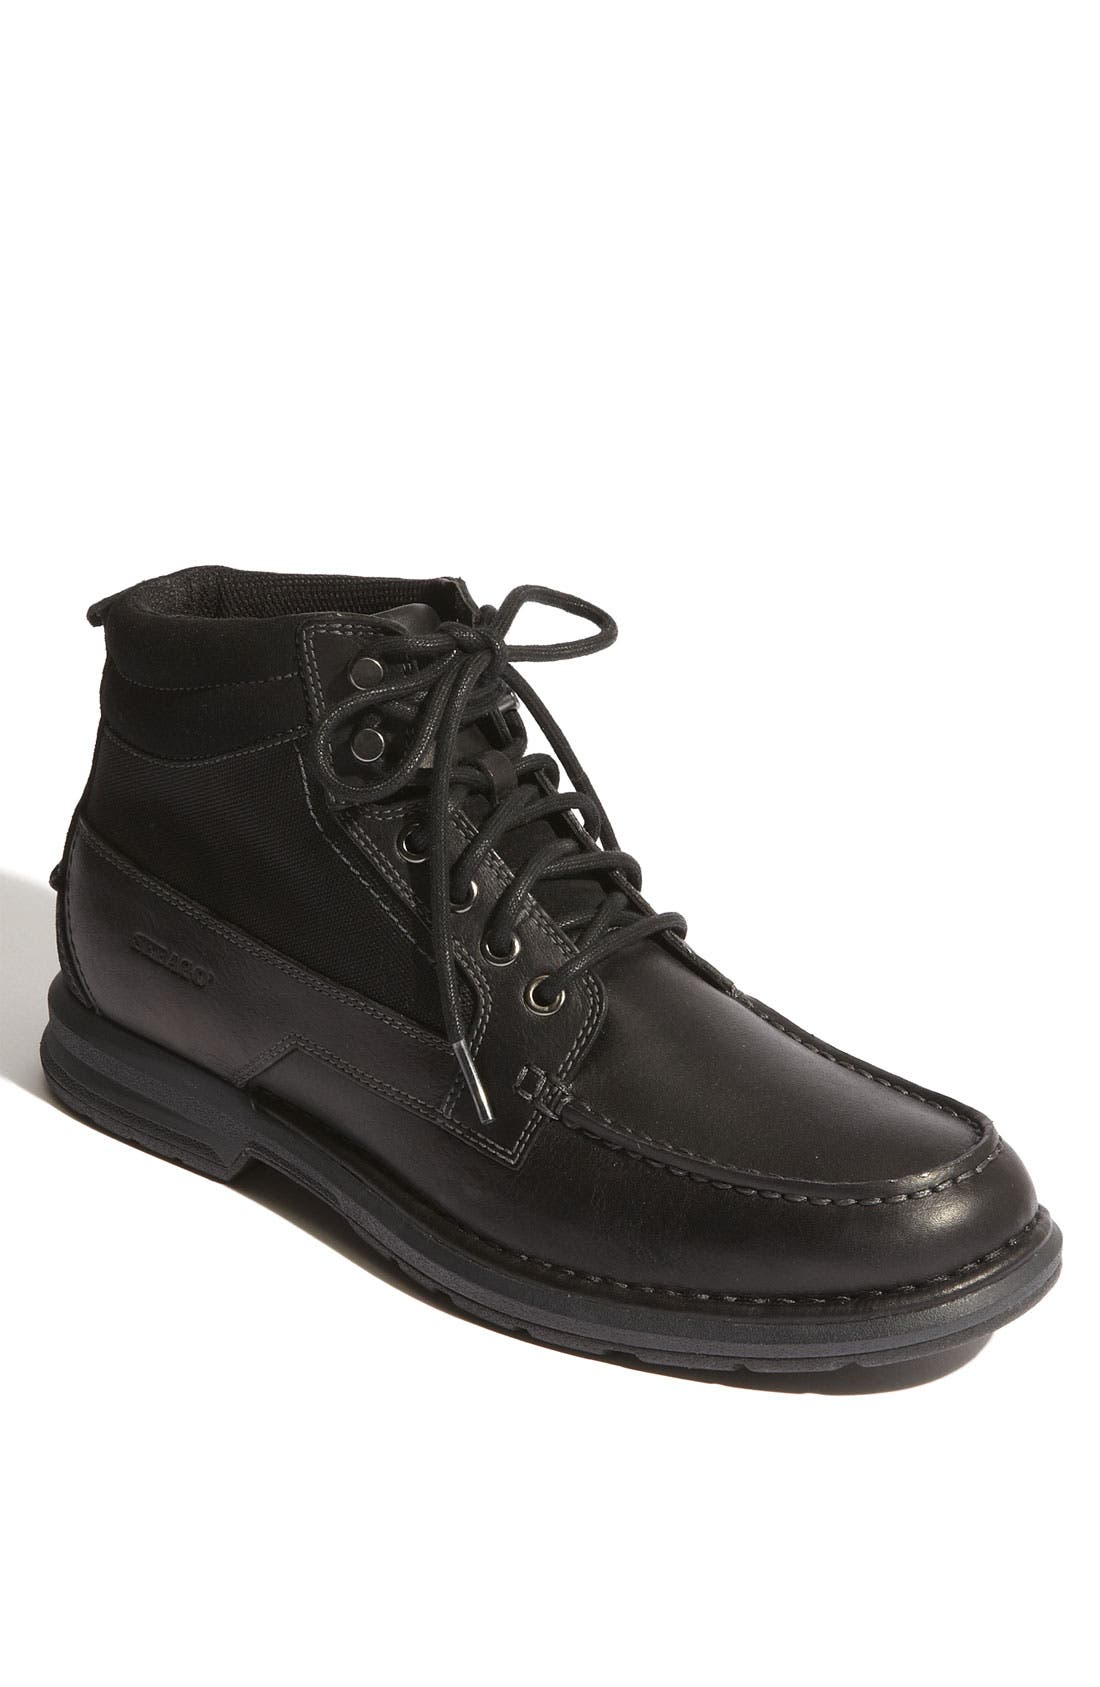 'Concord' Ankle Boot,                             Main thumbnail 1, color,                             001